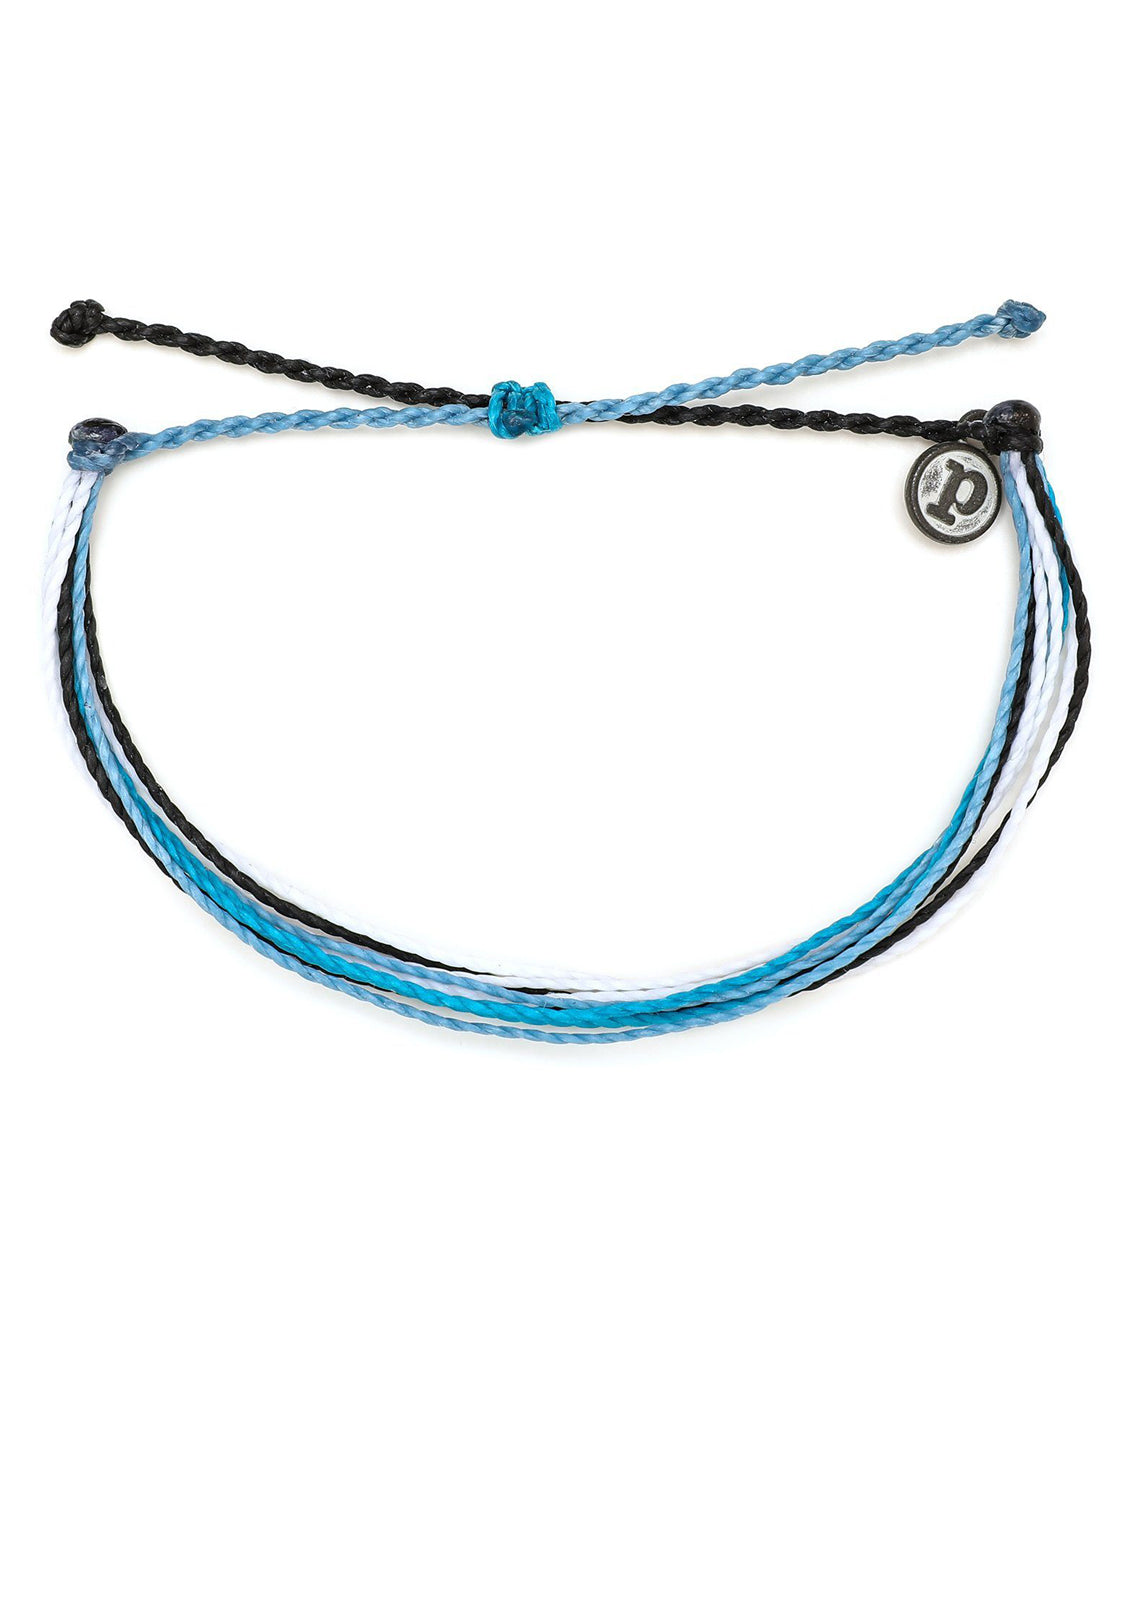 Pura Vida Never Ever Give Up Bracelet